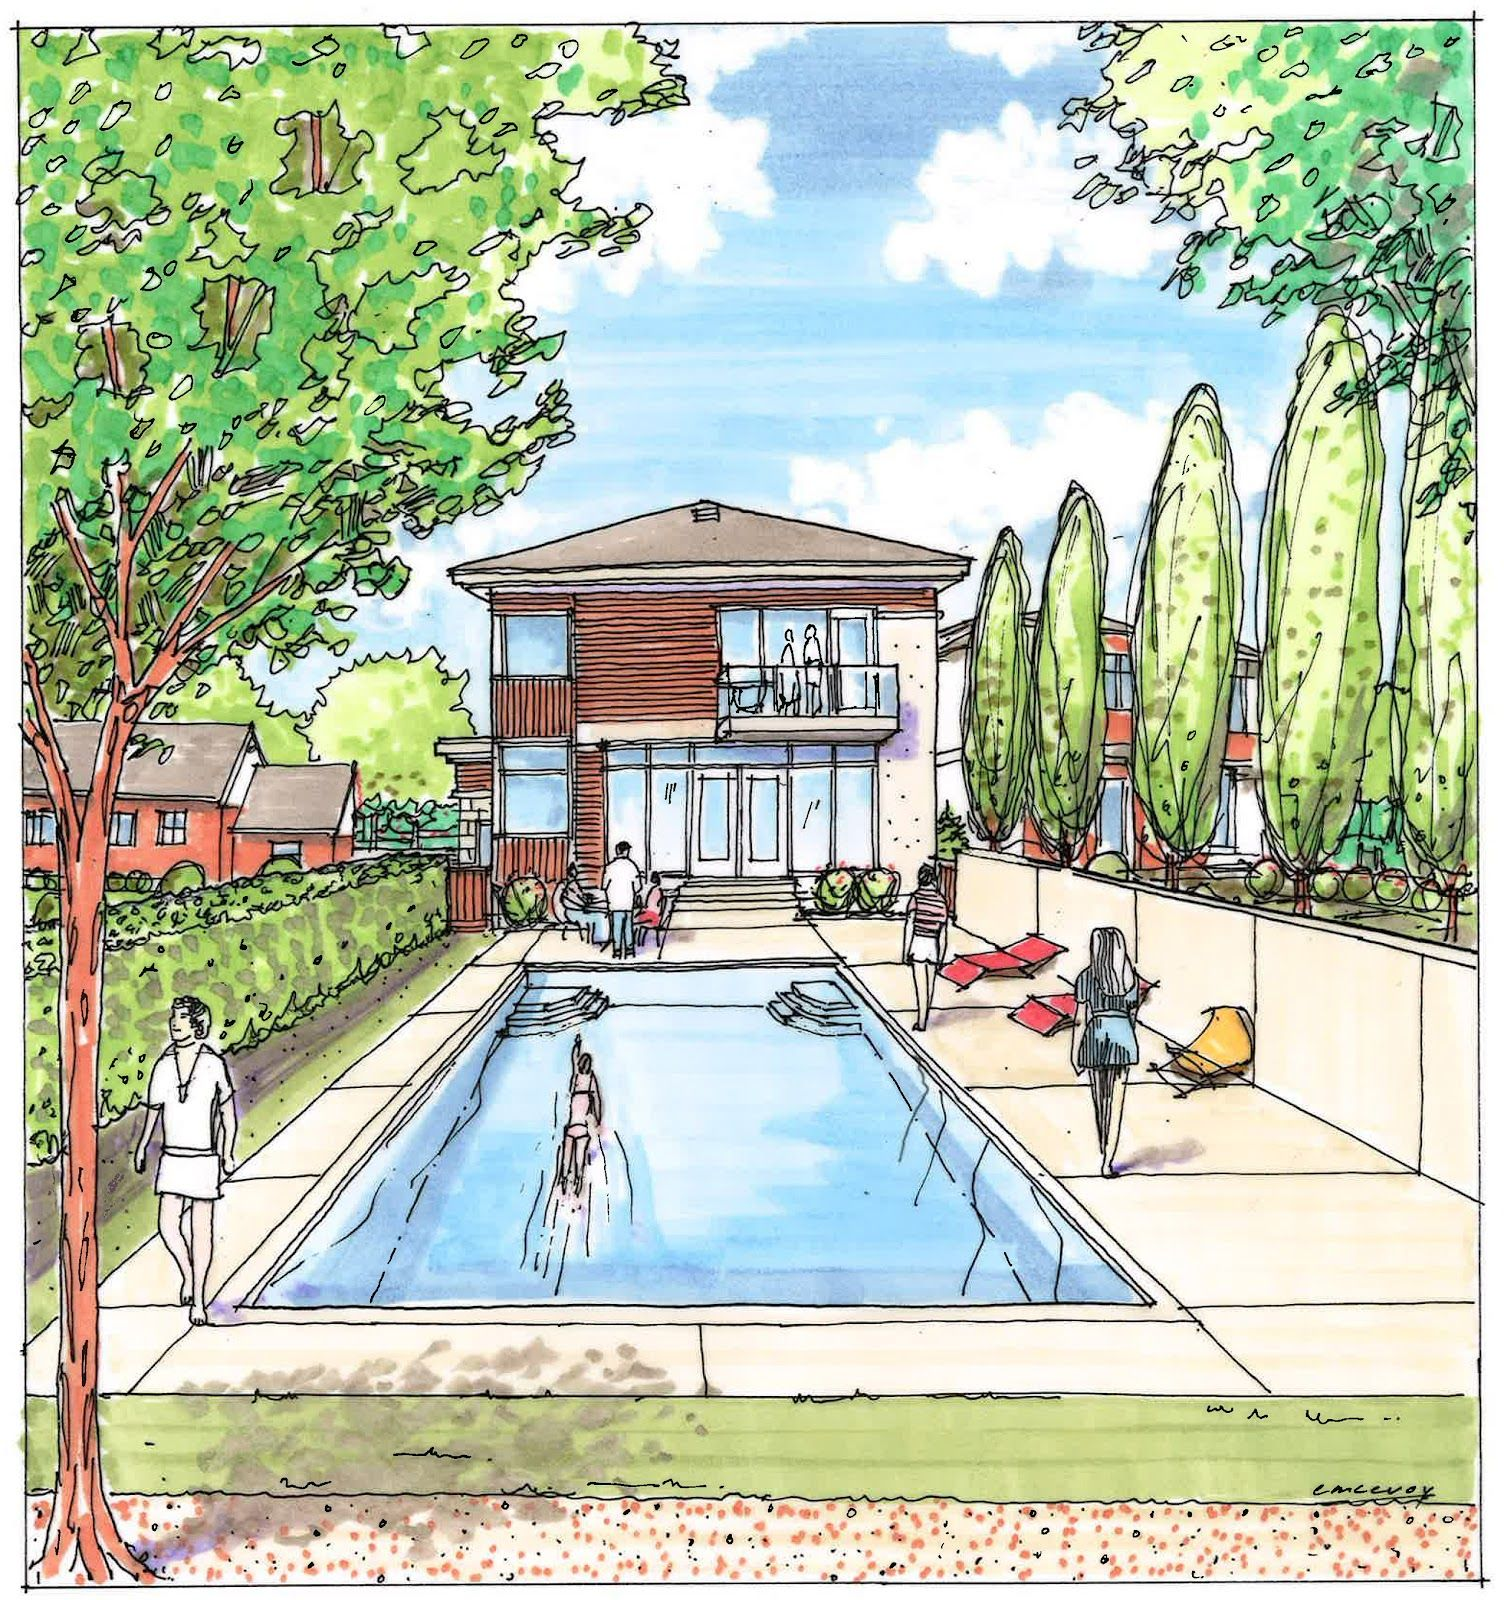 Landscaping Design Drawings - Google Search